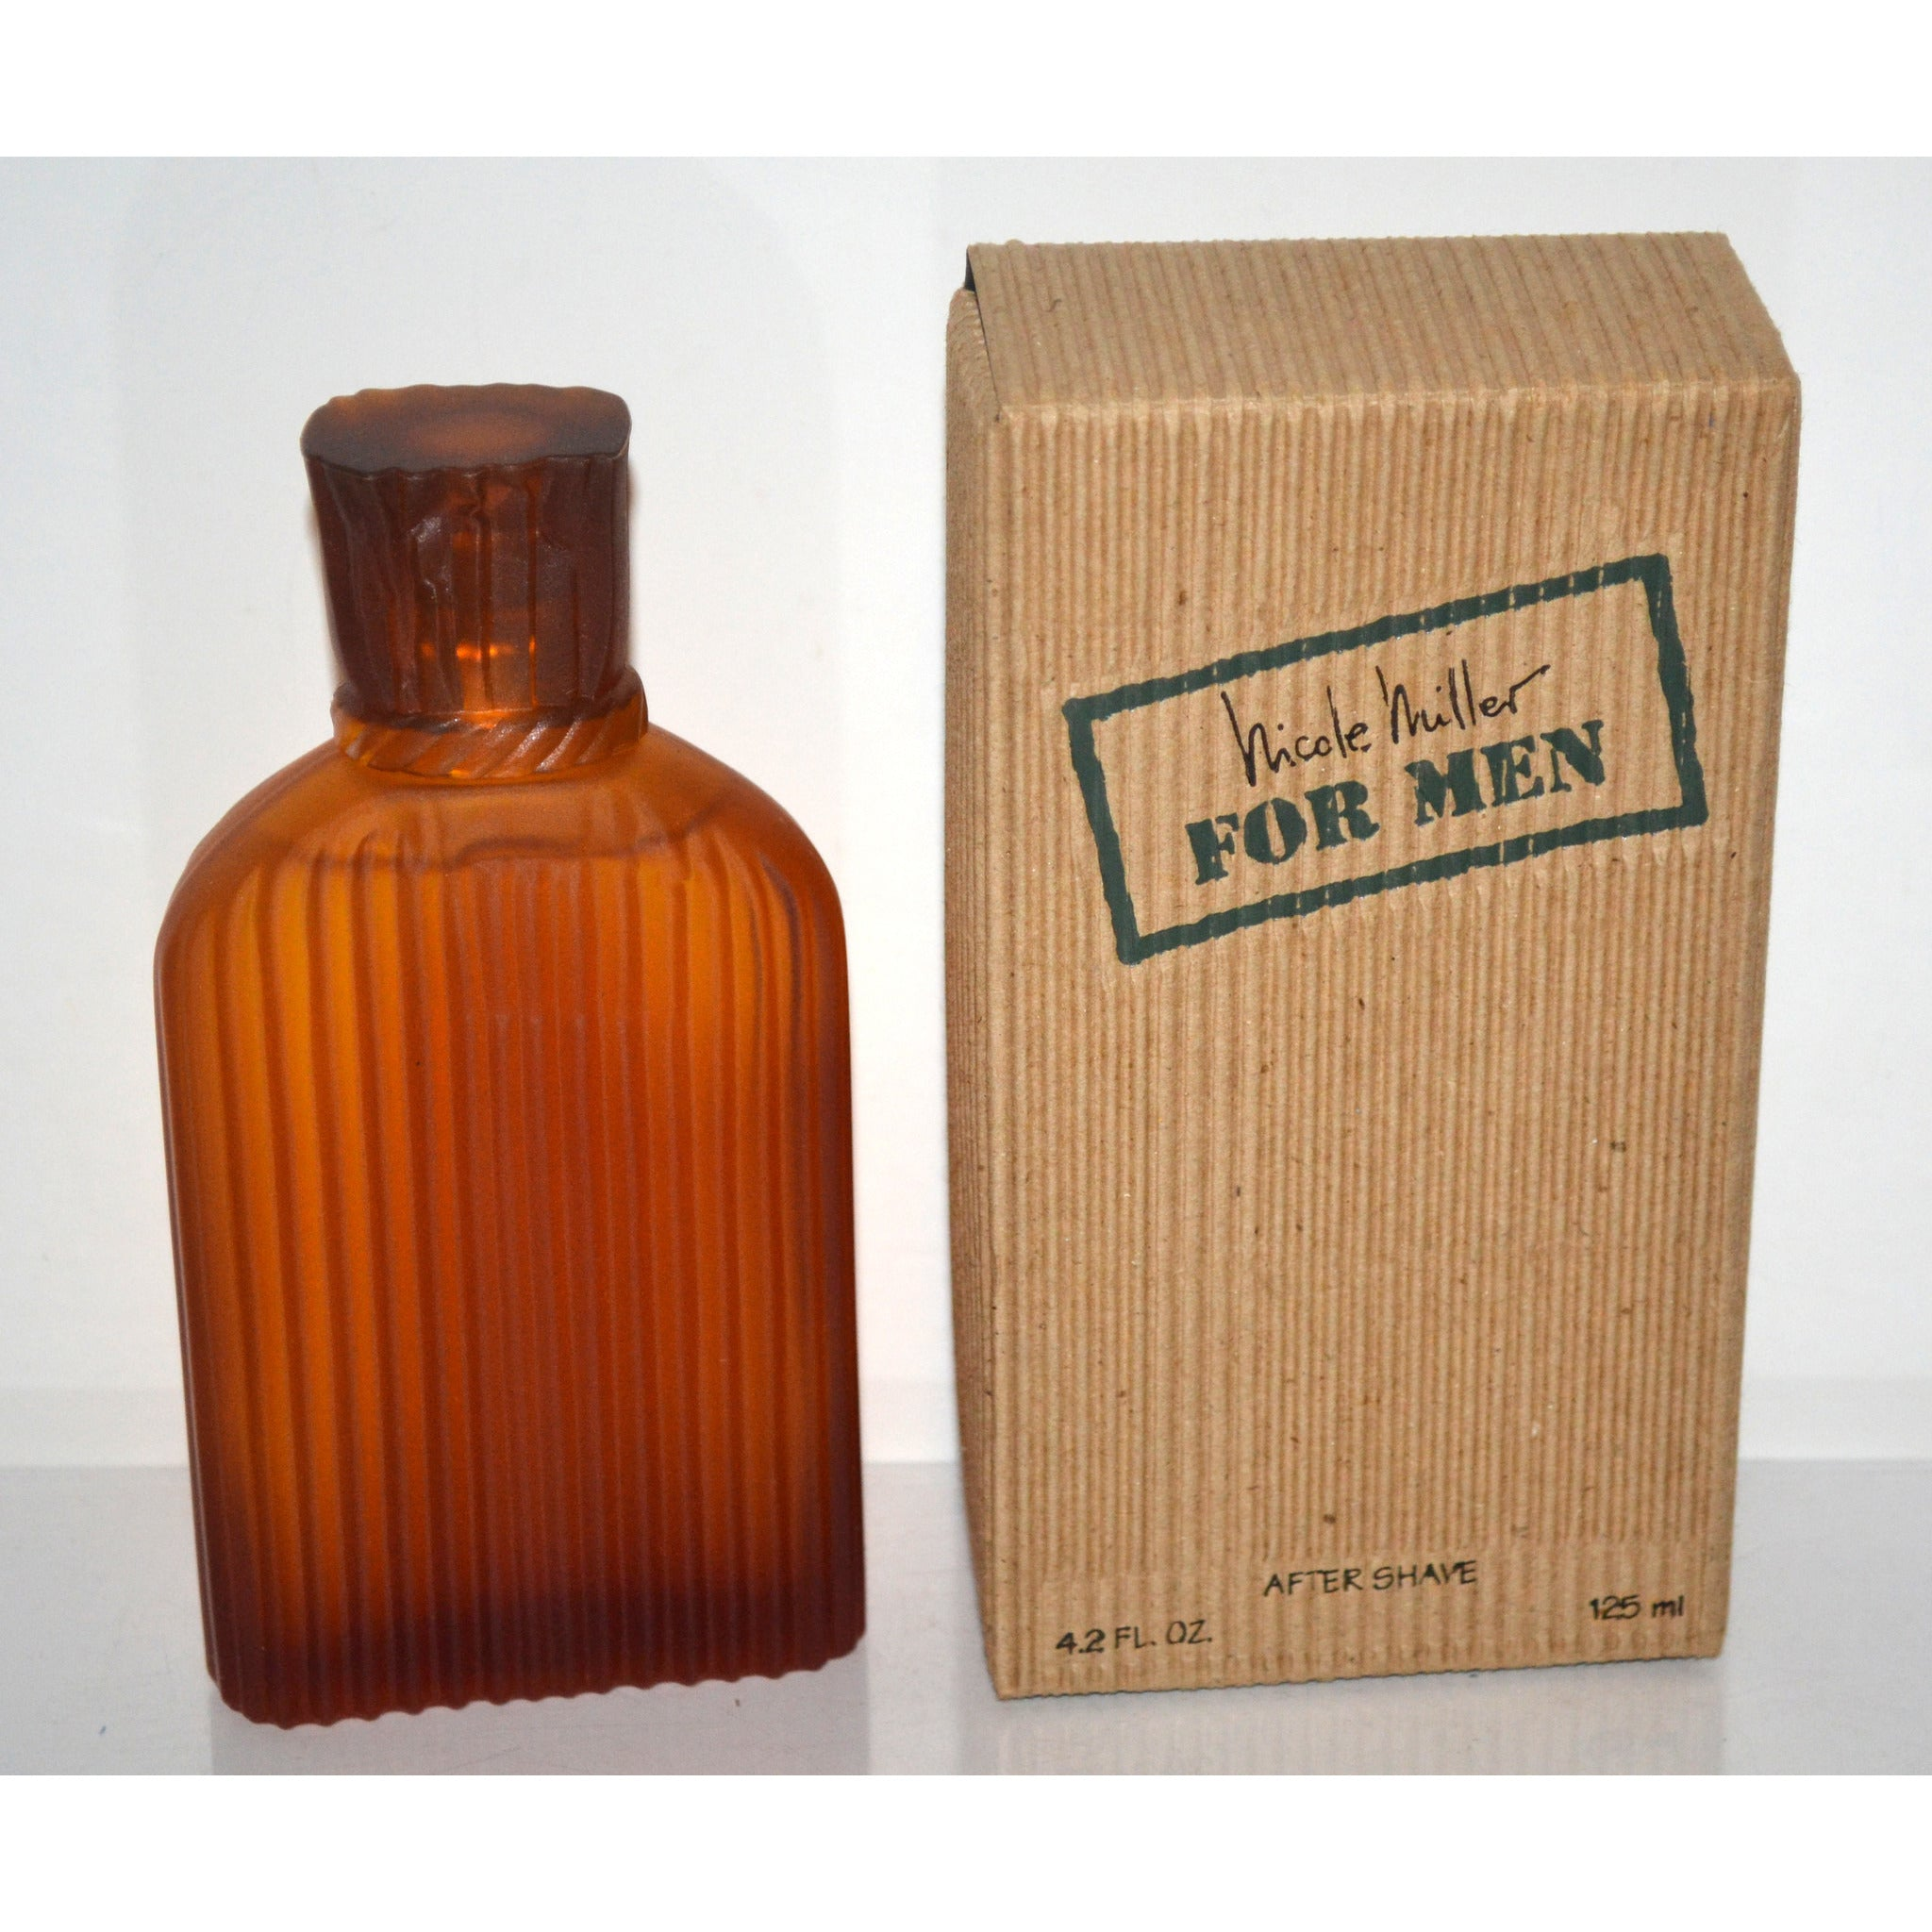 Discontinued Nicole Miller For Men After Shave